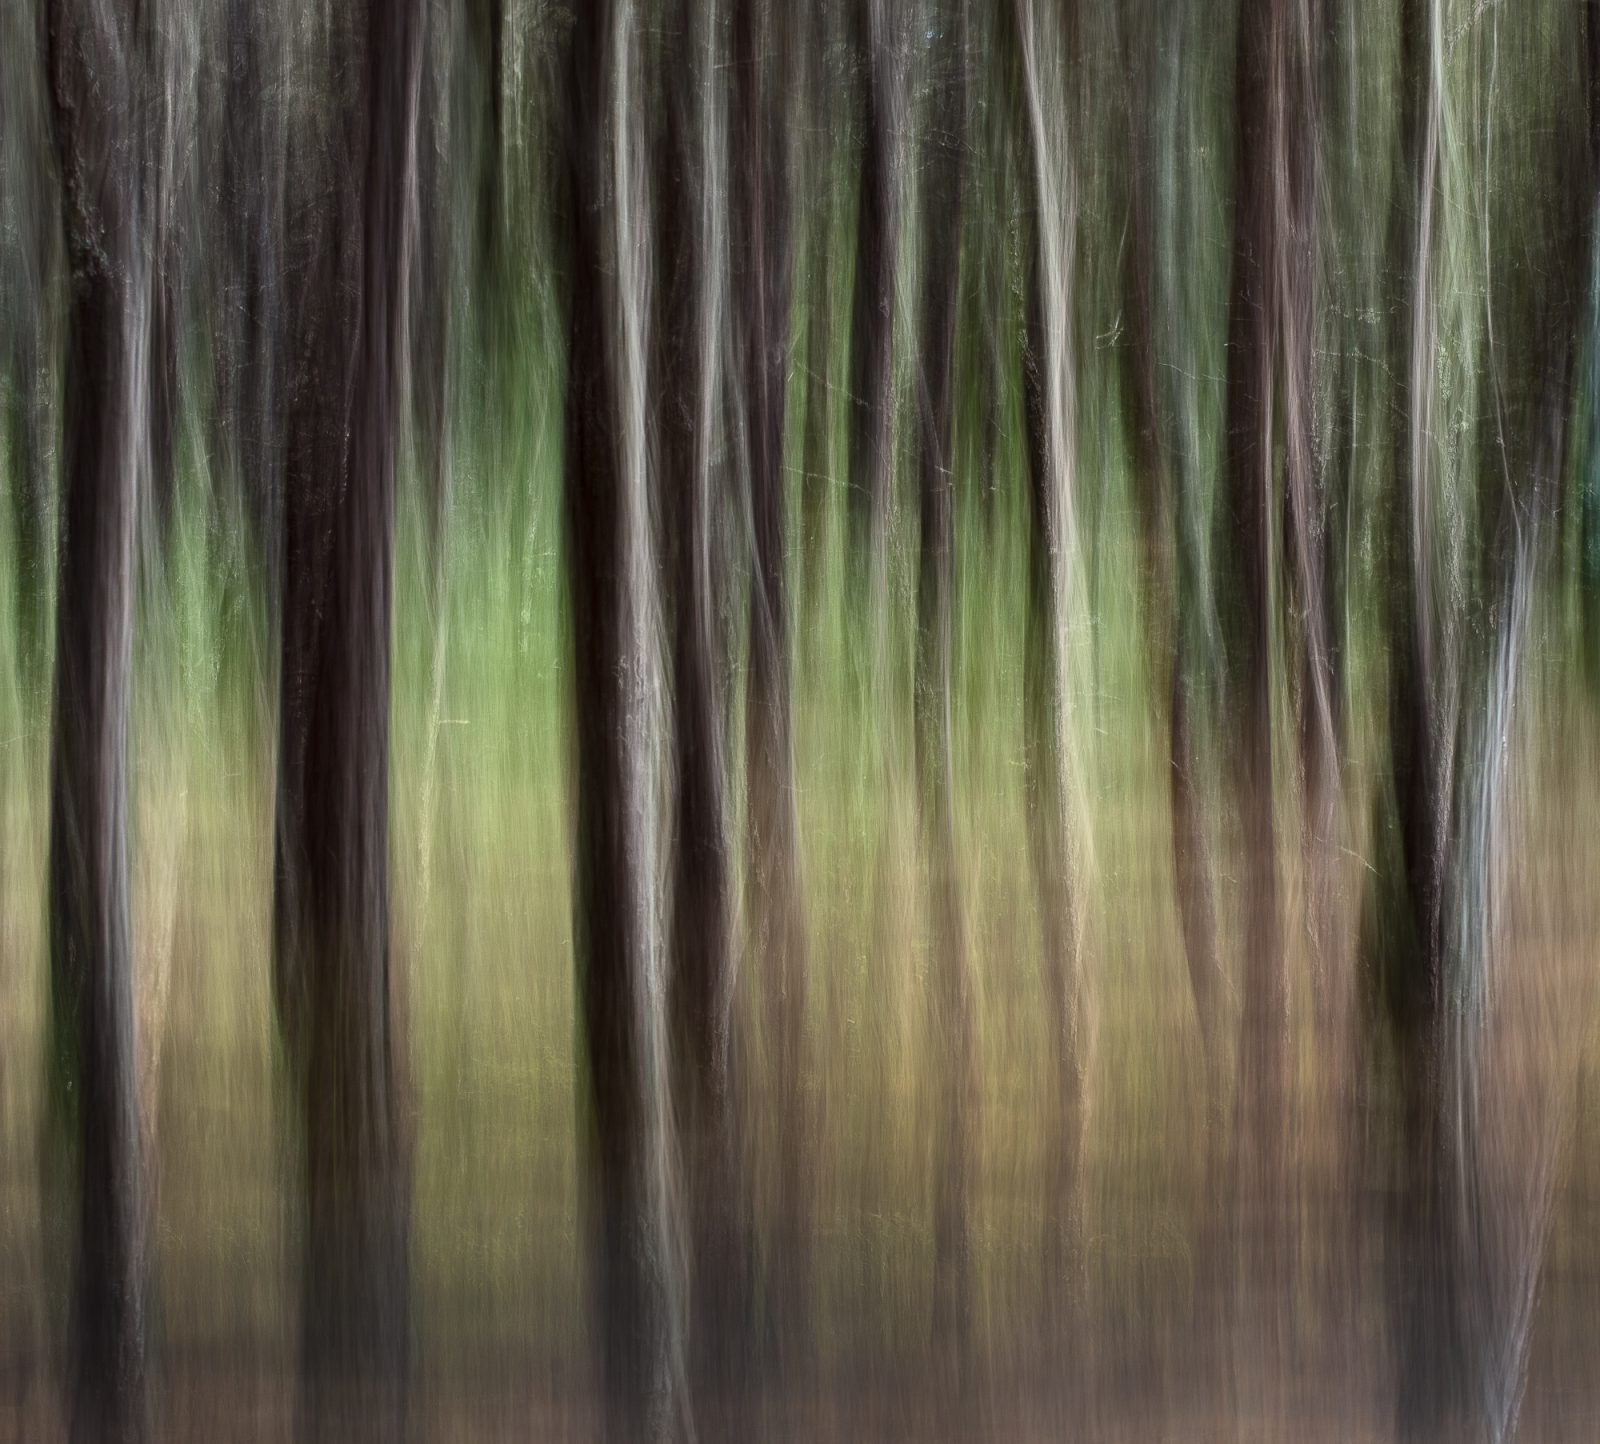 Enchanted Forest #1